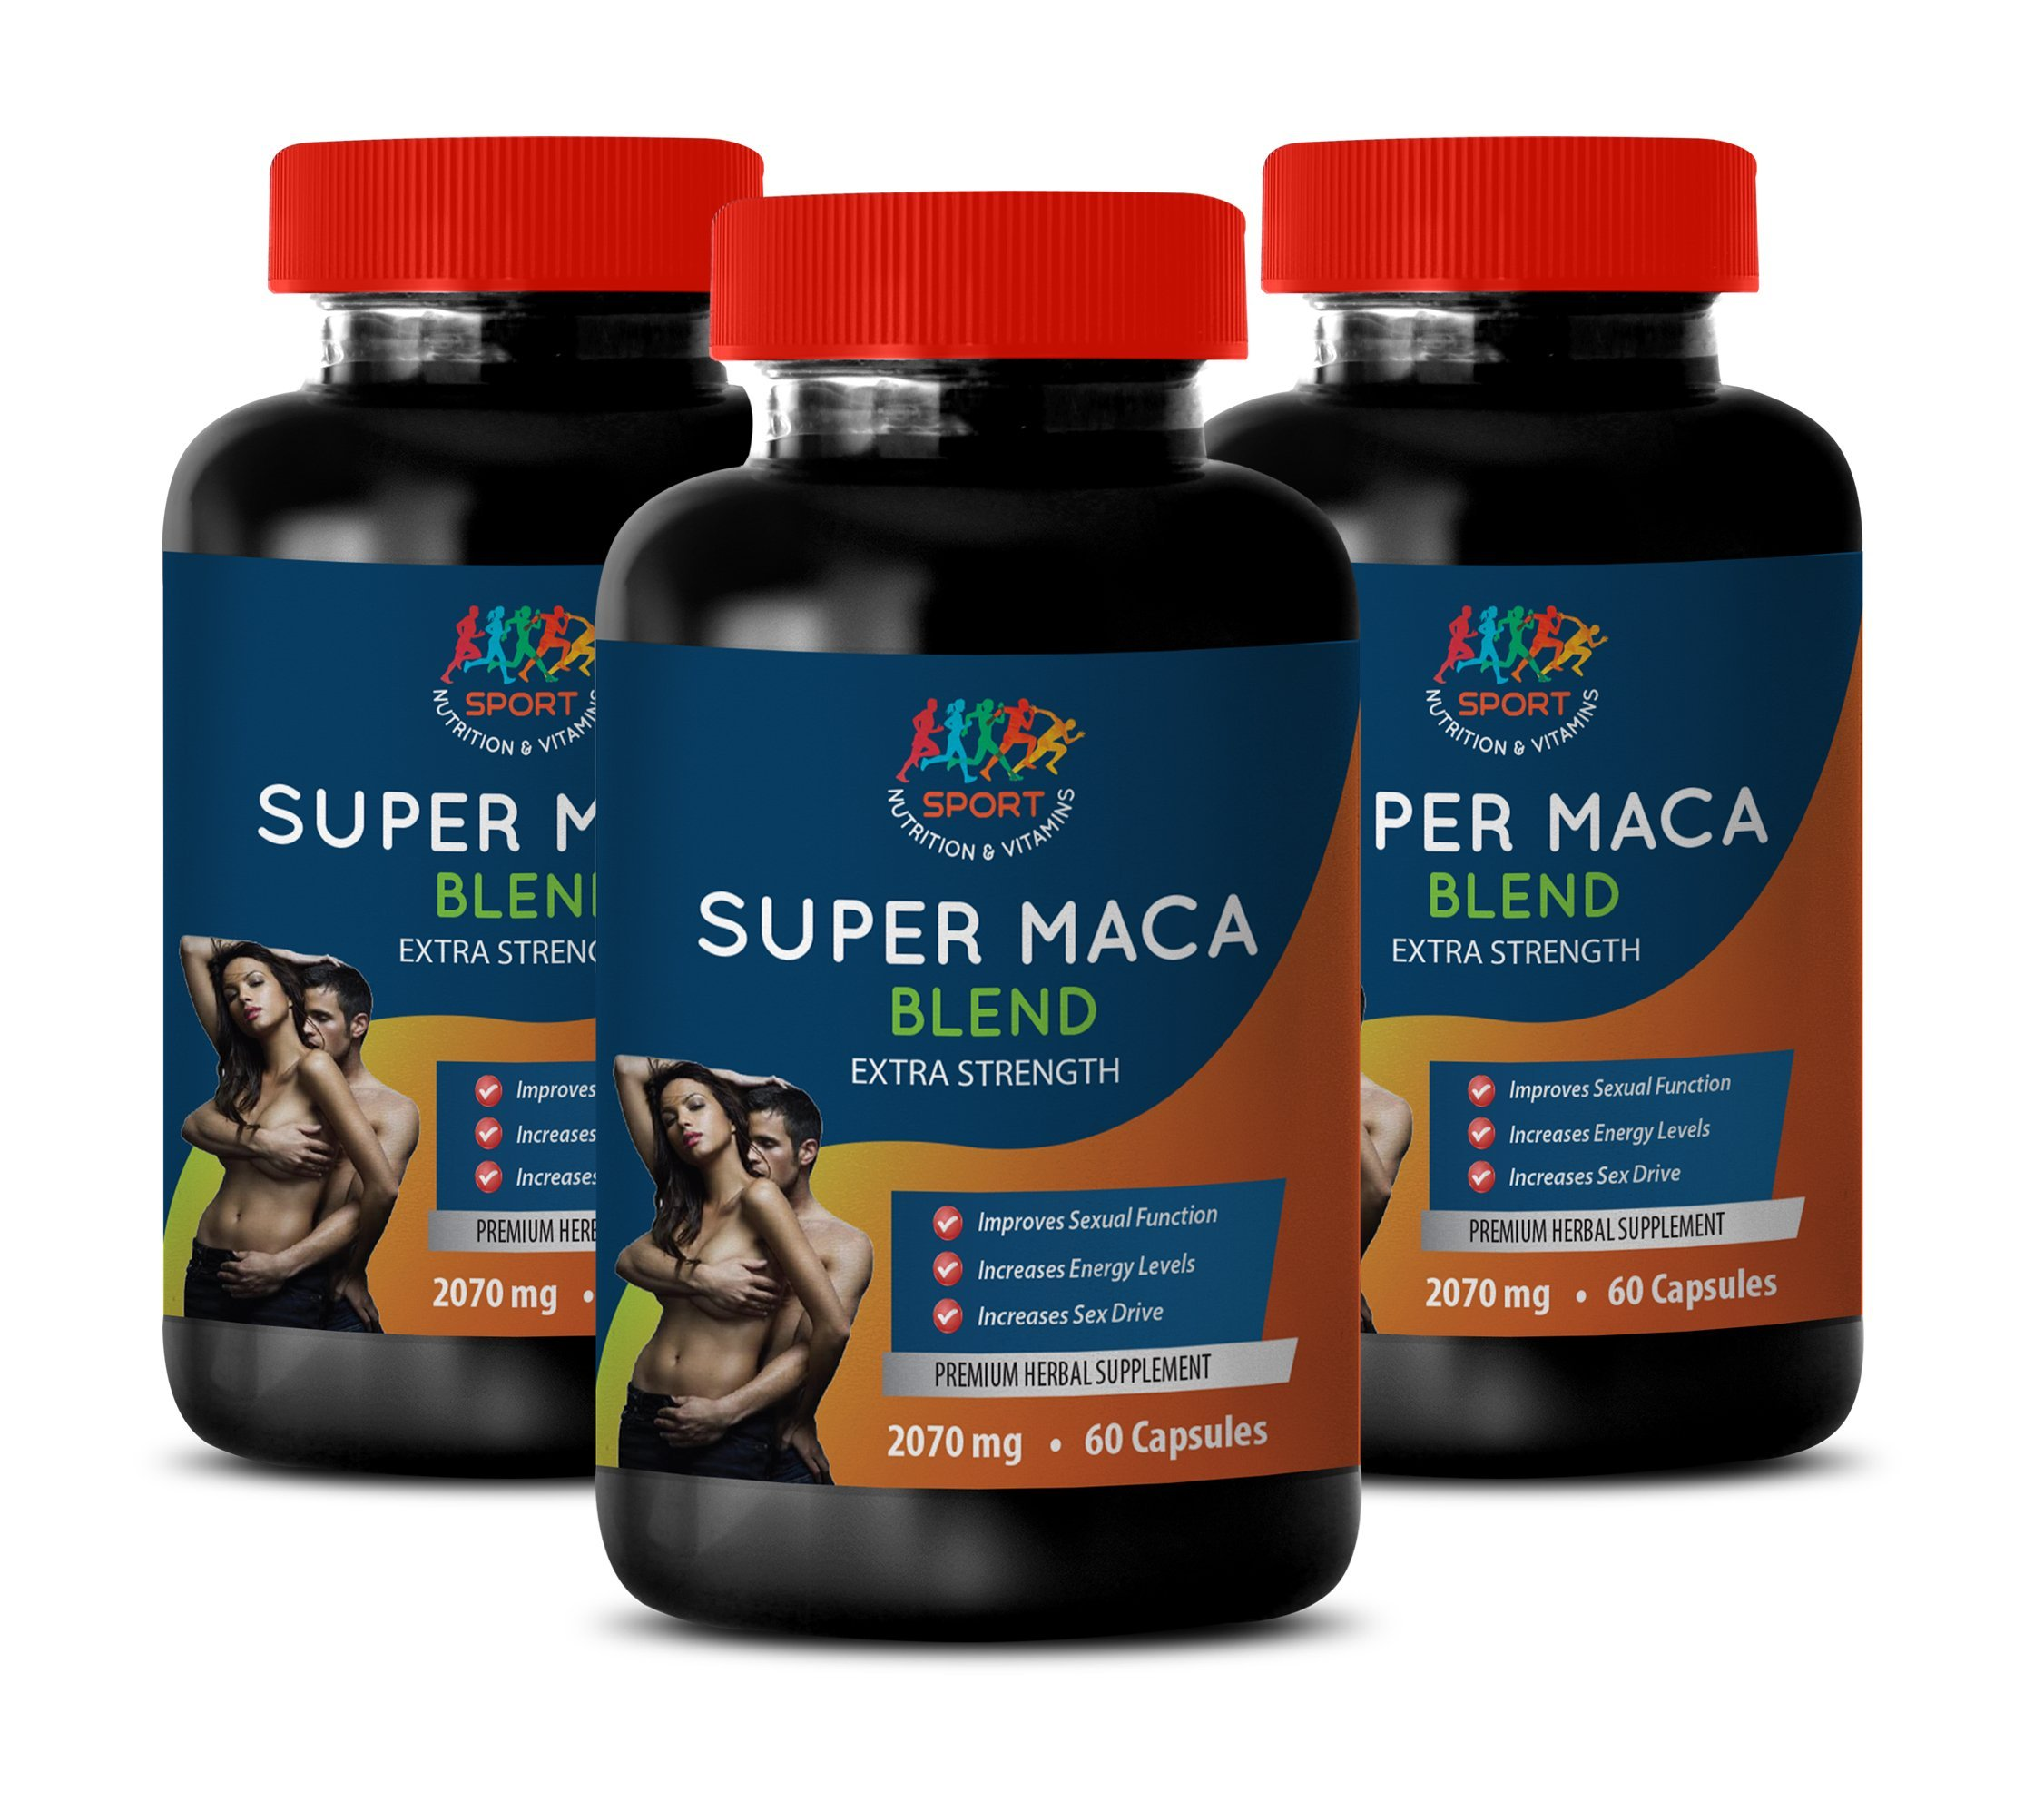 Men Sexual Stamina Supplement - Super MACA Blend 2070 MG - Extra Strength - yohimbe Supplement for Men - 3 Bottles 180 Capsules by Sport Nutrition & Vitamins USA